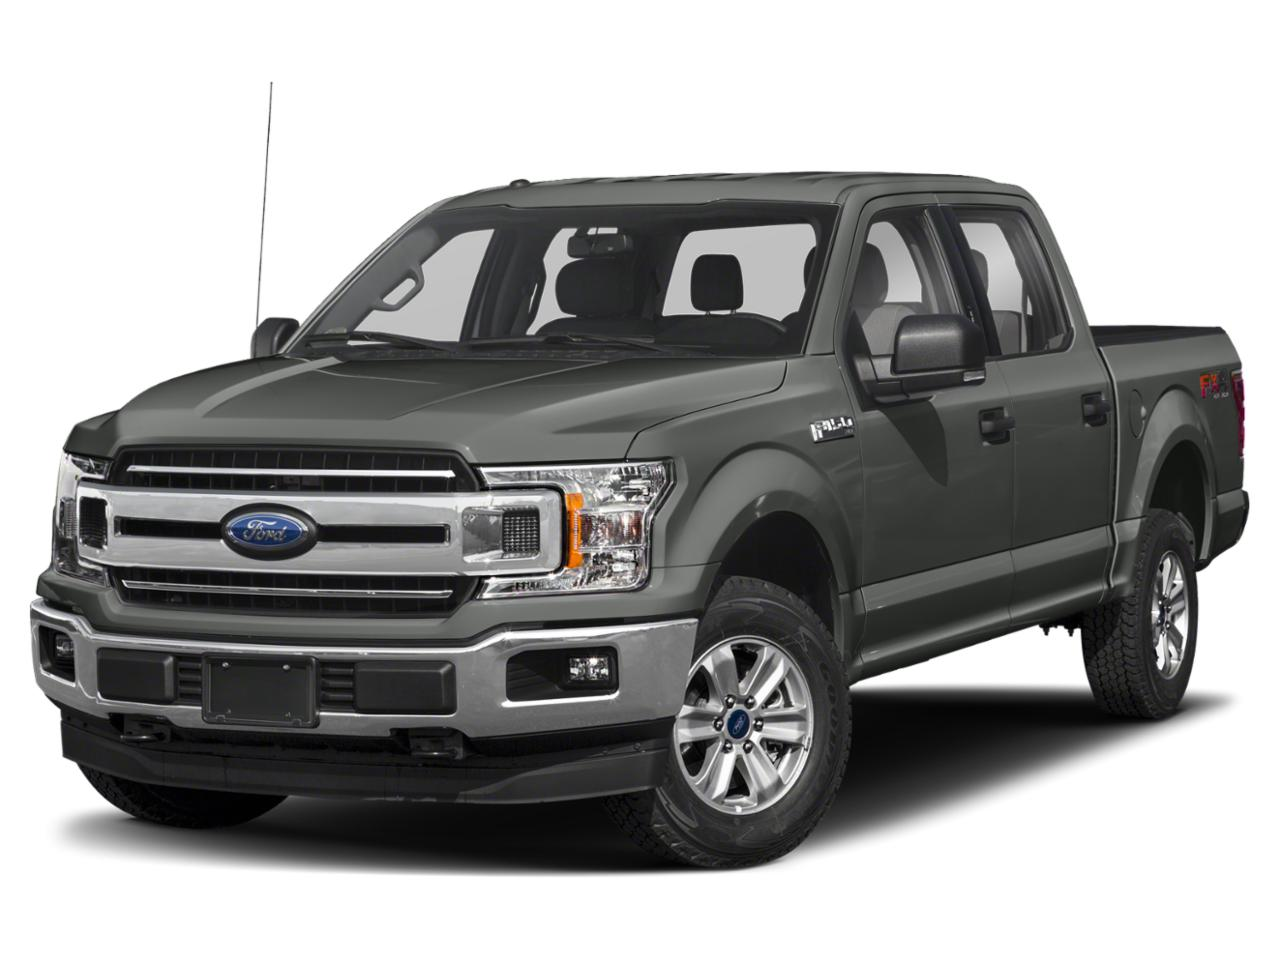 2018 Ford F-150 Vehicle Photo in Souderton, PA 18964-1034